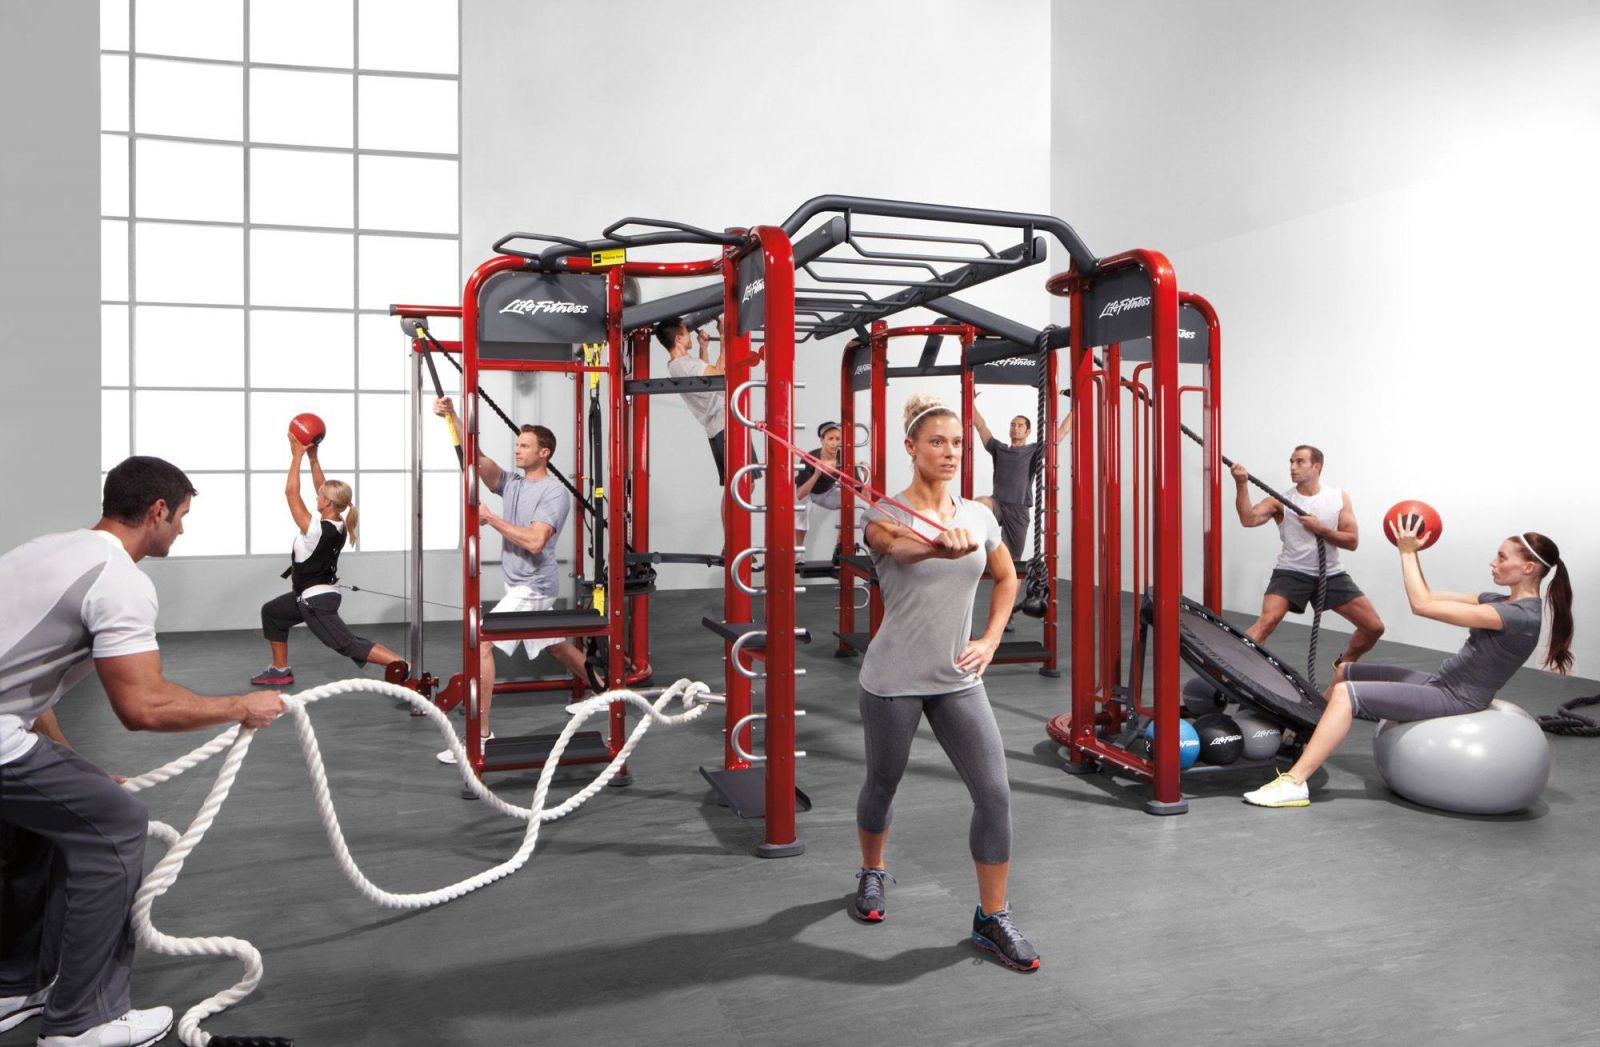 Fitness: Details about Functional Training Equipment for ...